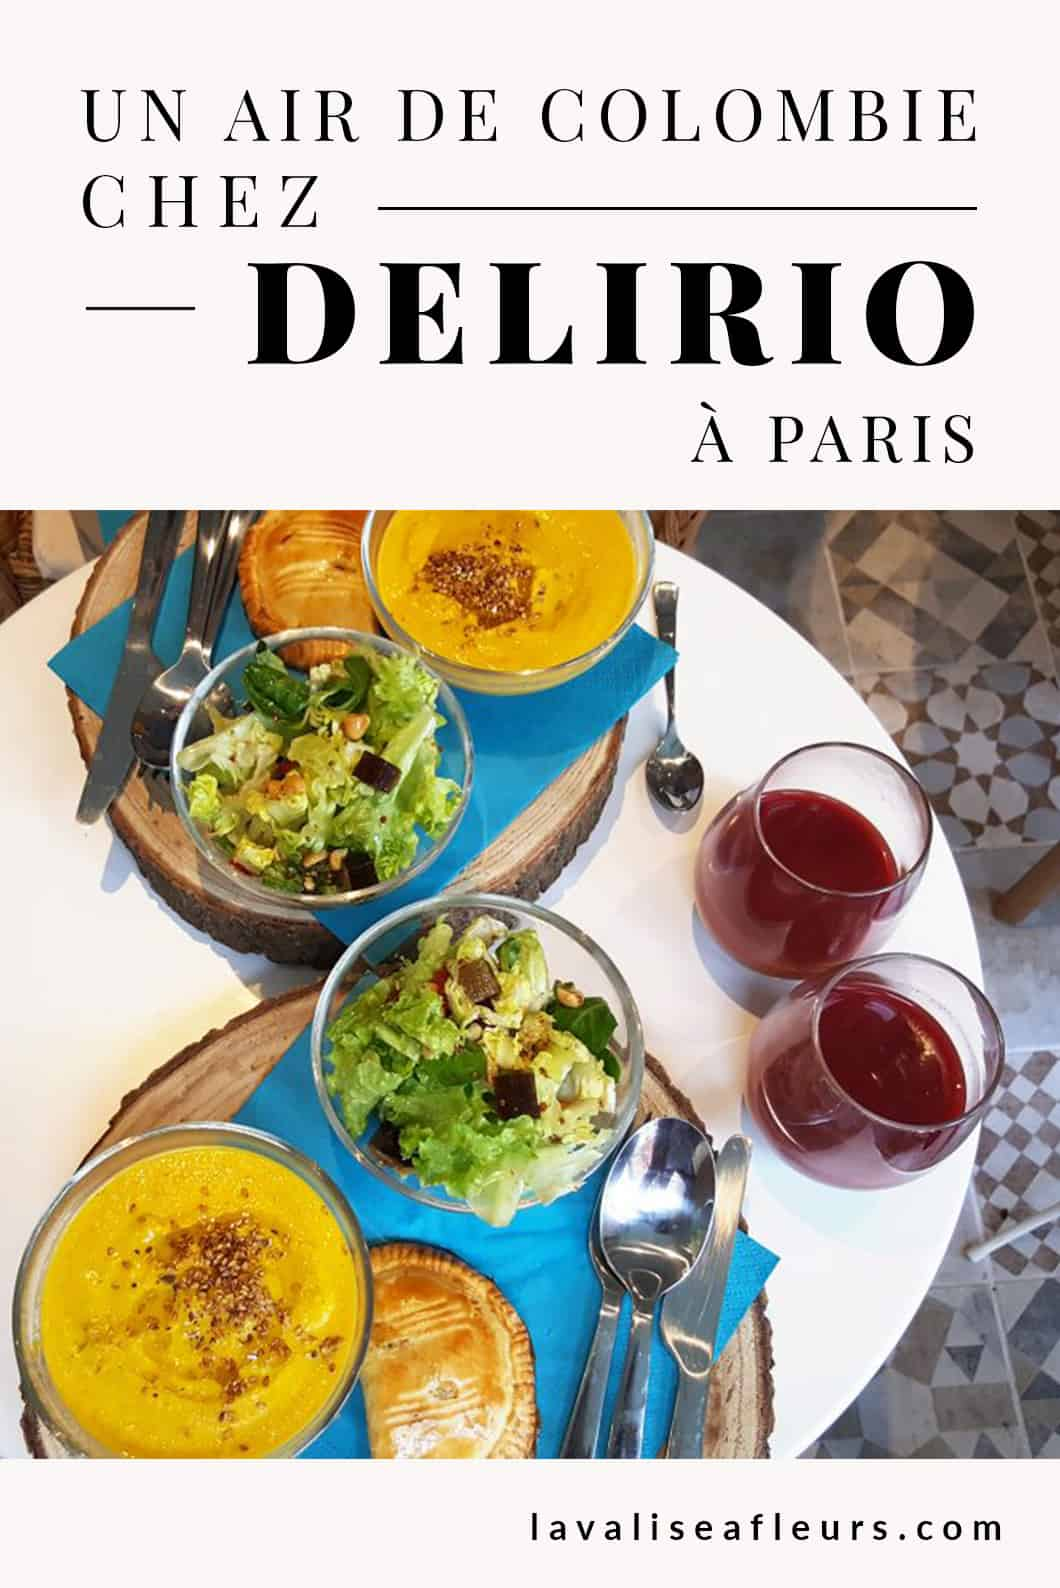 Un air de Colombie chez Delirio à Paris